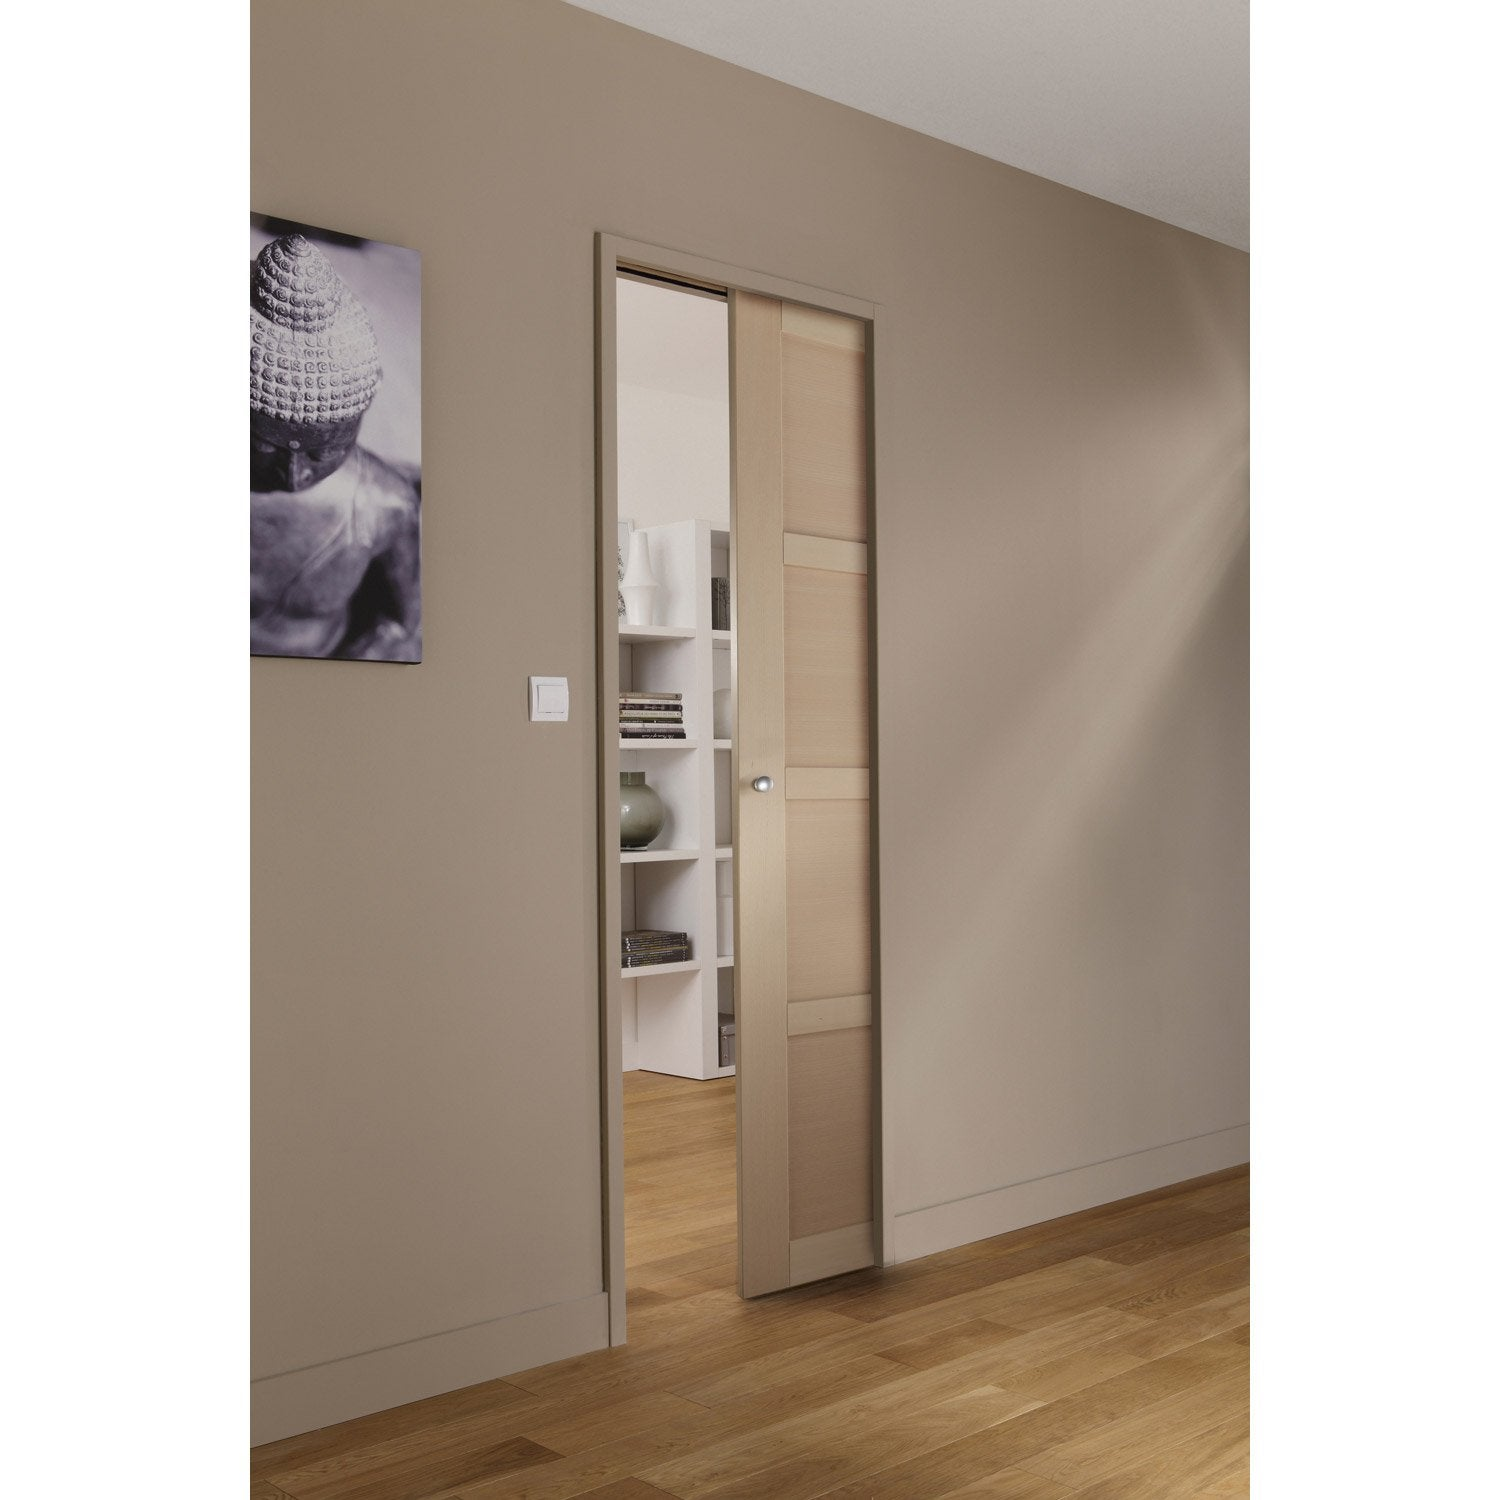 ensemble porte coulissante nova h tre avec le galandage artens 3 en aluminium leroy merlin. Black Bedroom Furniture Sets. Home Design Ideas